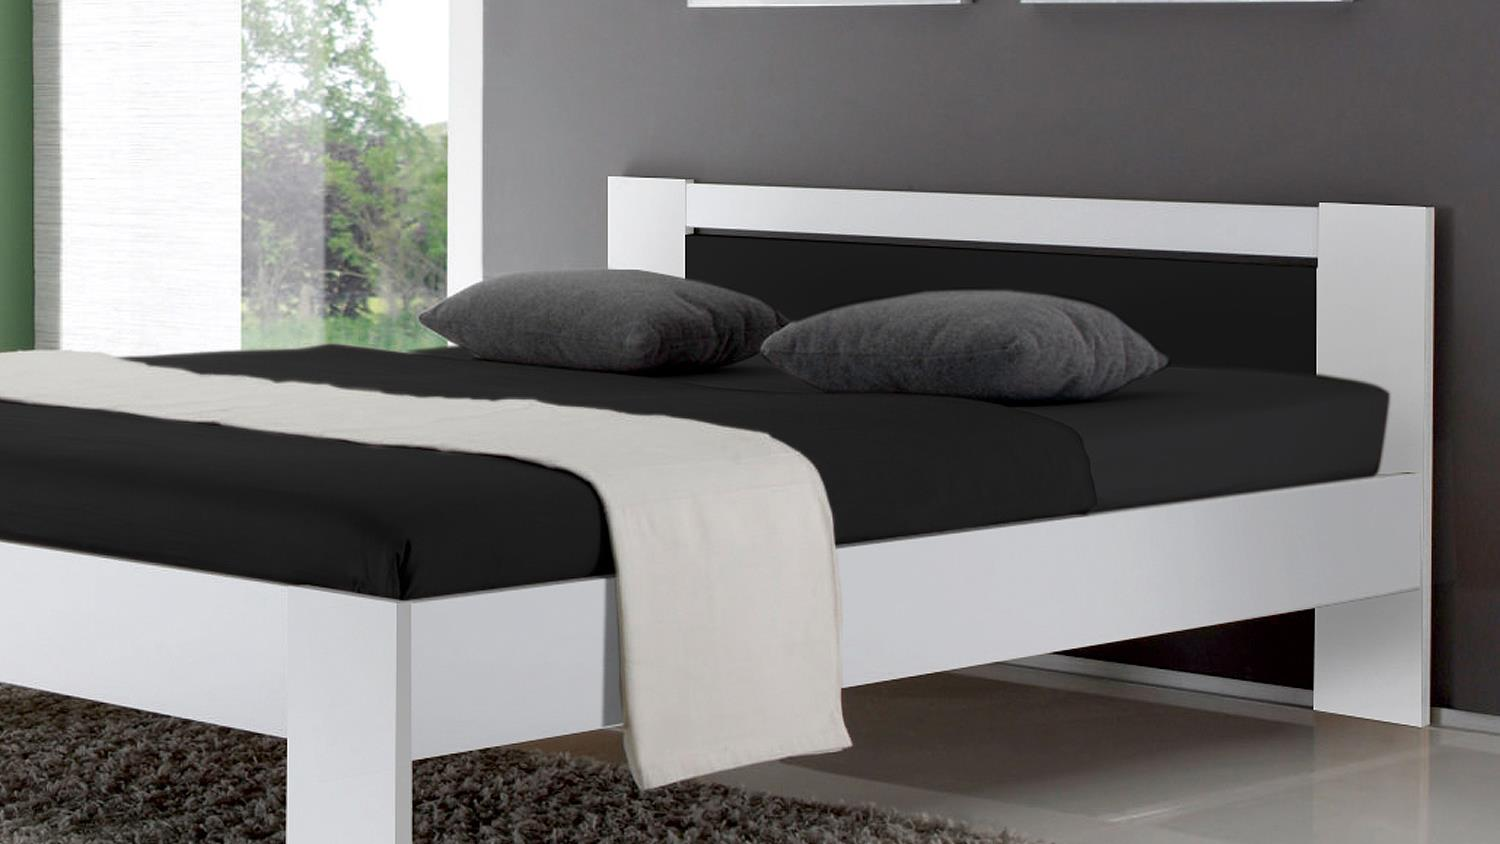 bett vega futonbett wei schwarz mit rollrost und matratze. Black Bedroom Furniture Sets. Home Design Ideas